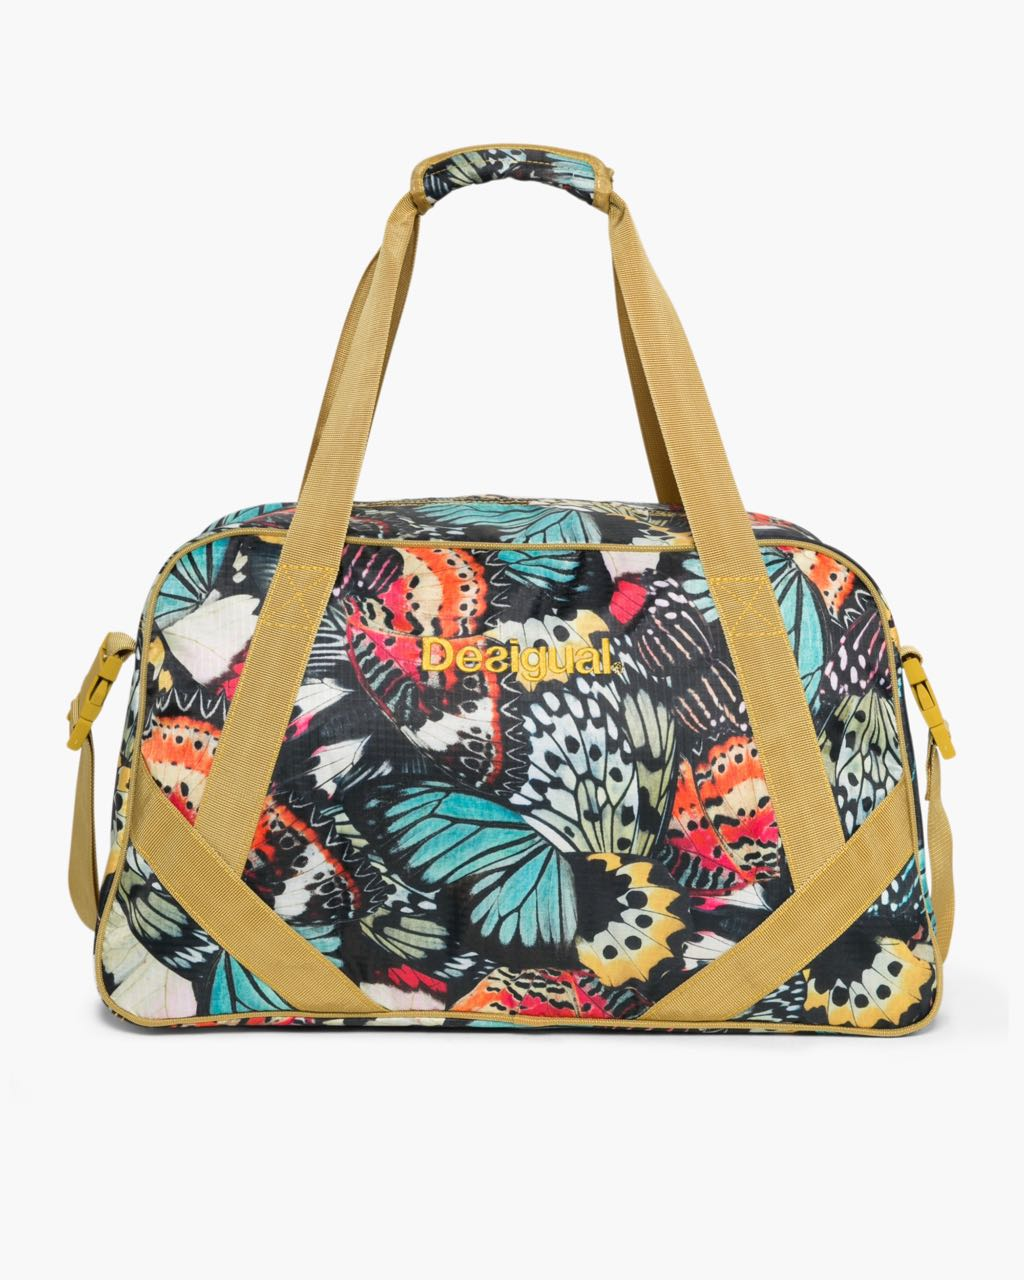 17WXRW22_3204 Desigual Sport Bag Gym Duffle Bag Buy Online